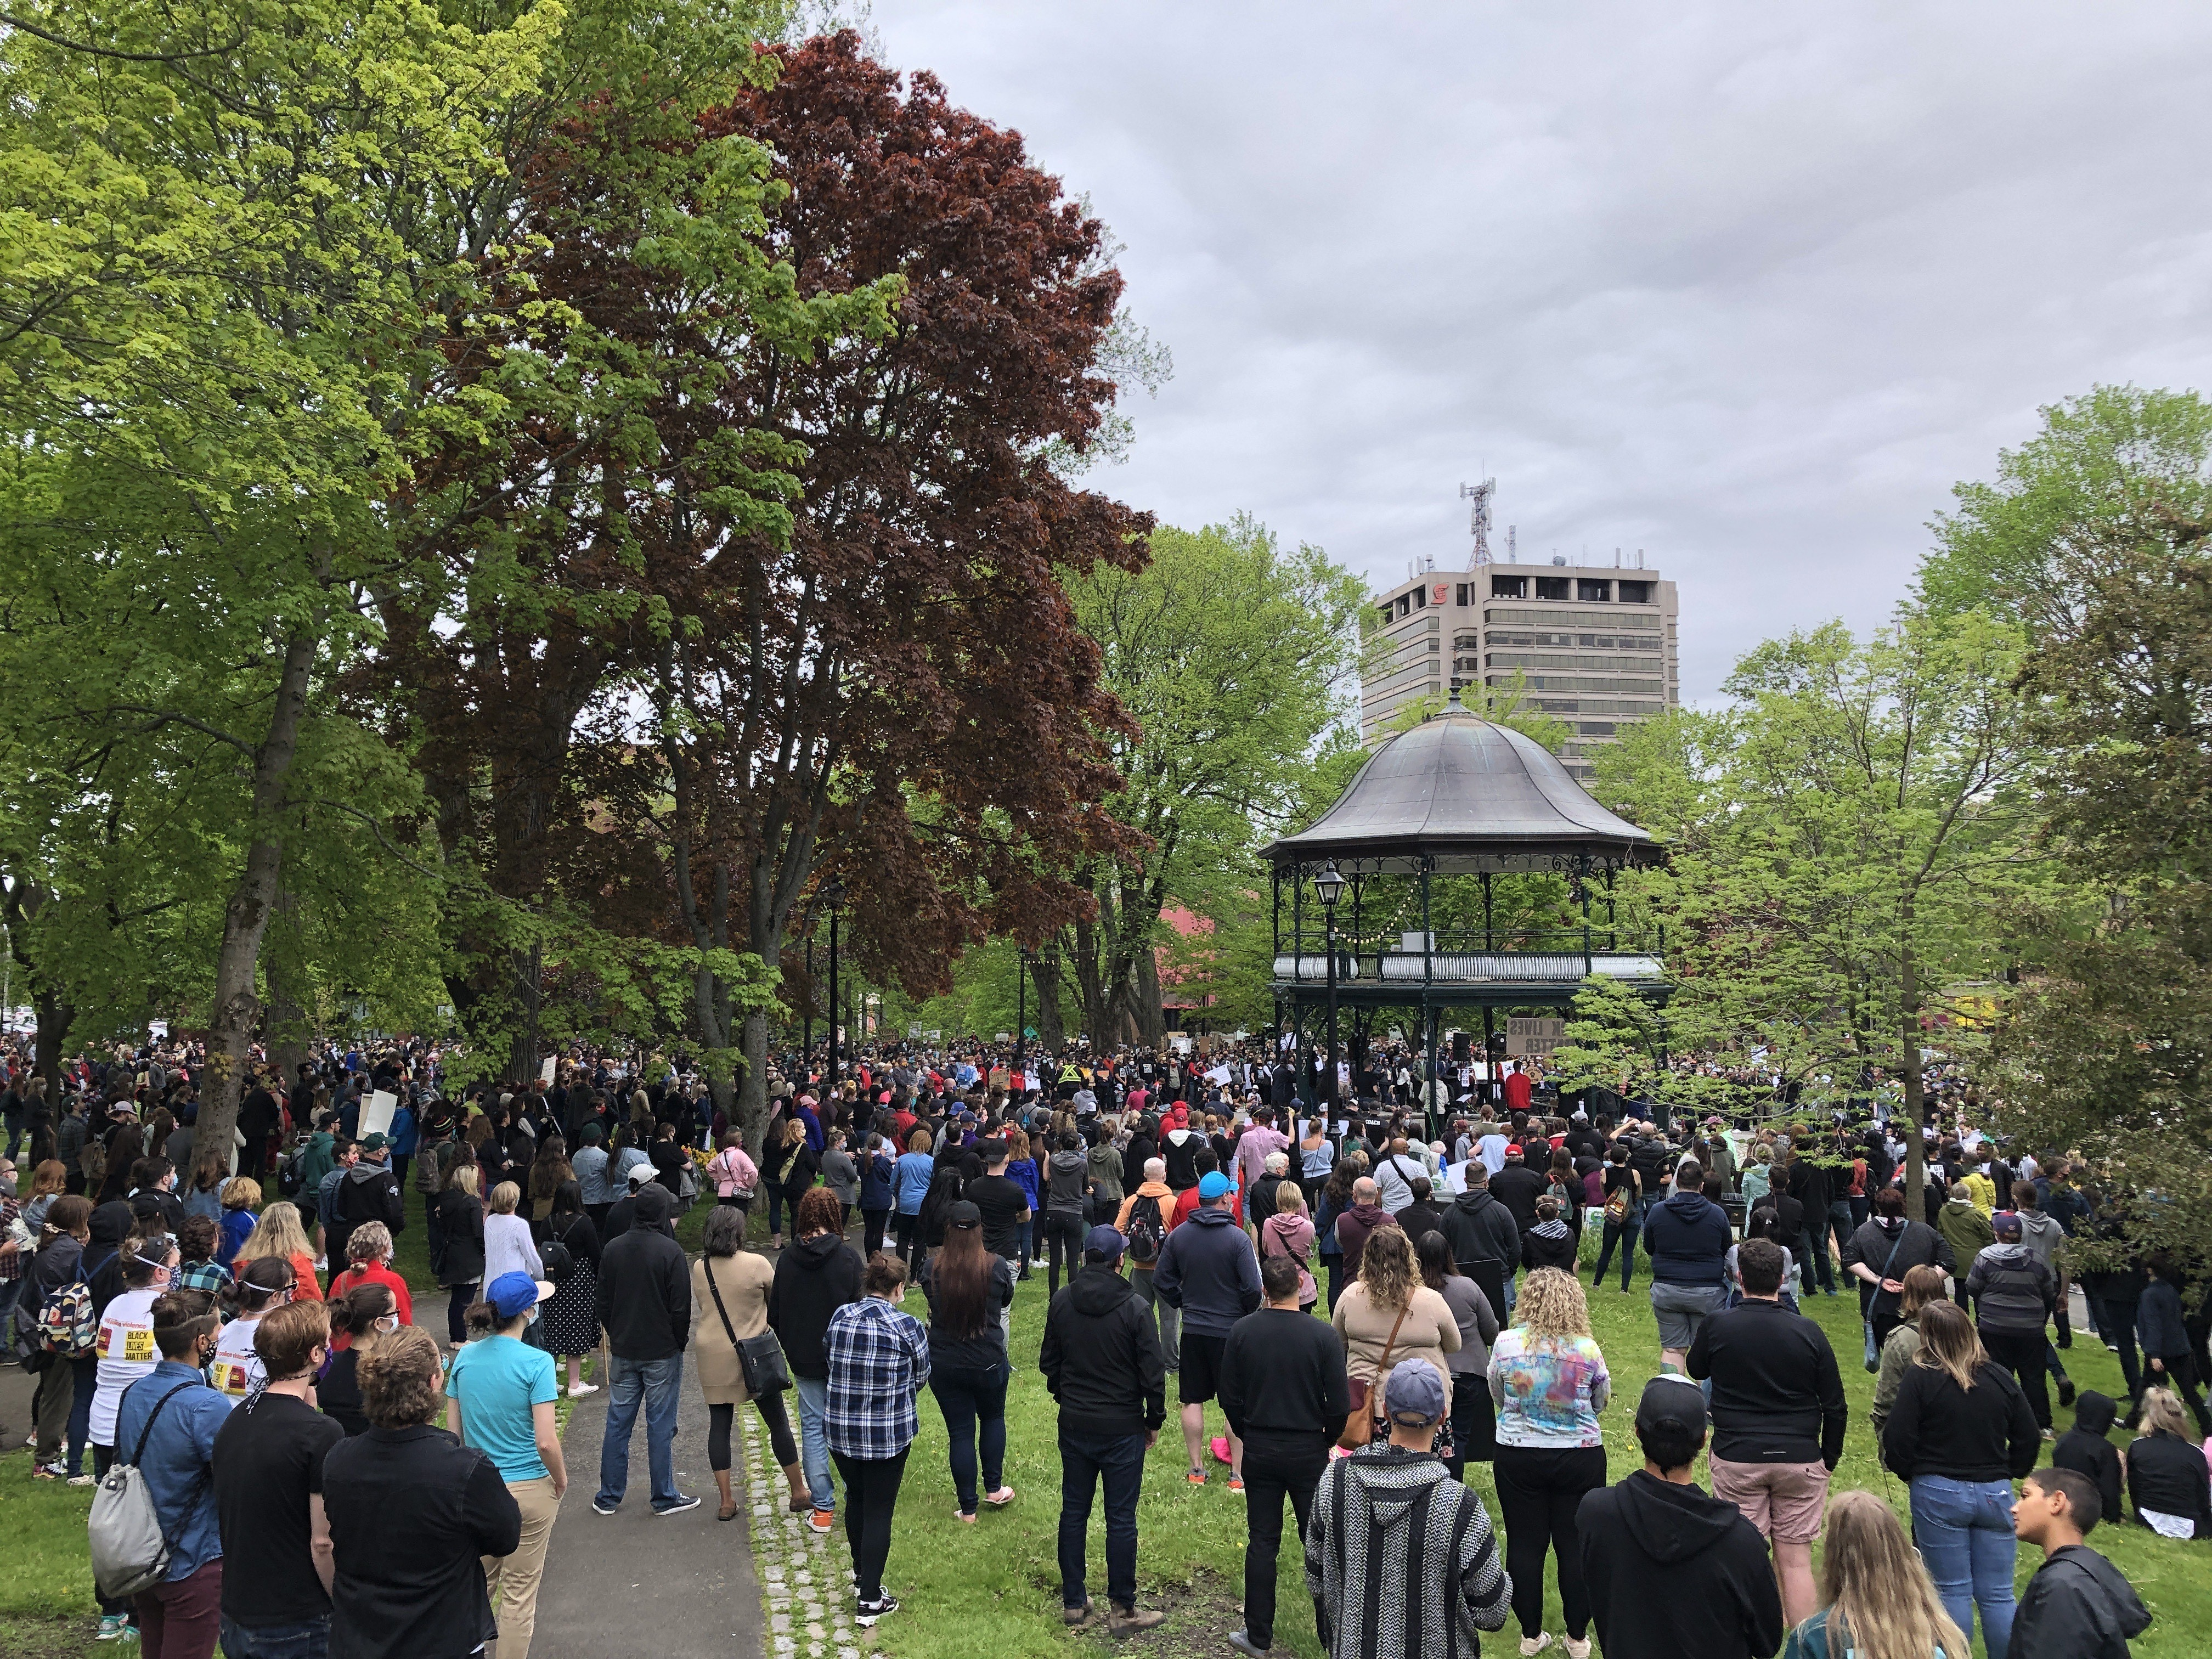 More than 1,000 people took to the streets in Saint John for the Black Lives Matter rally in June. (Julia Wright/CBC)